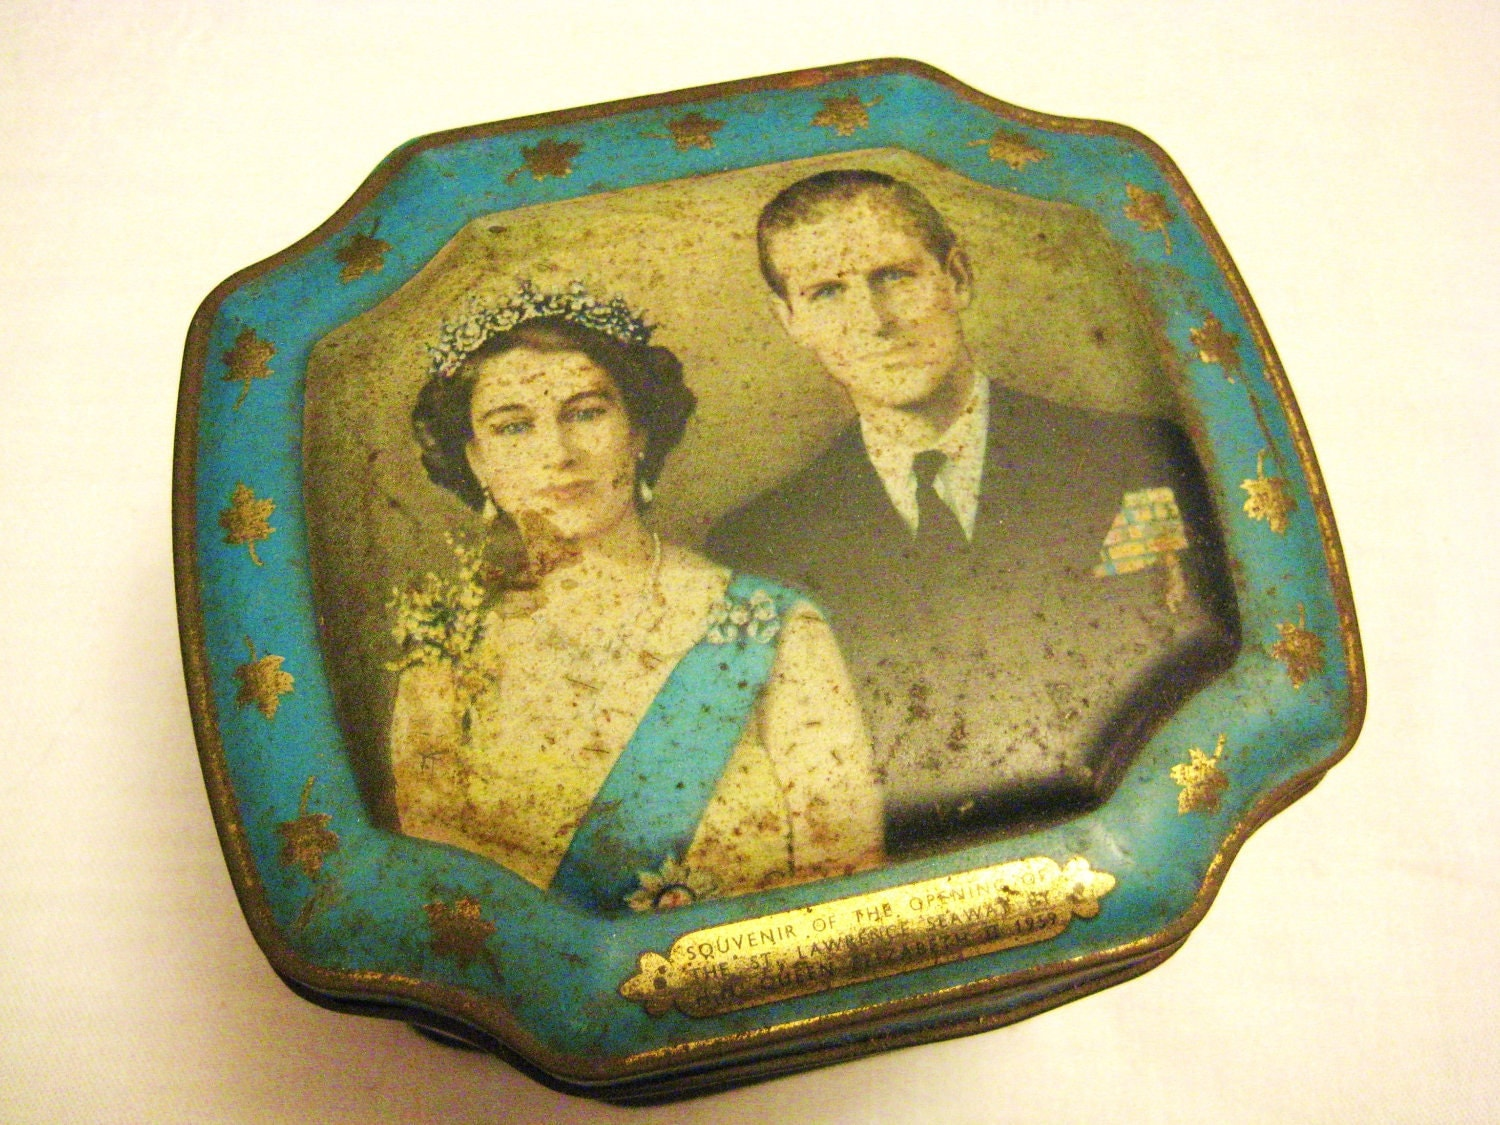 Antique Tin Souvenir with H.M. Queen Elizabeth II, 1959  by Barneche - Barneche